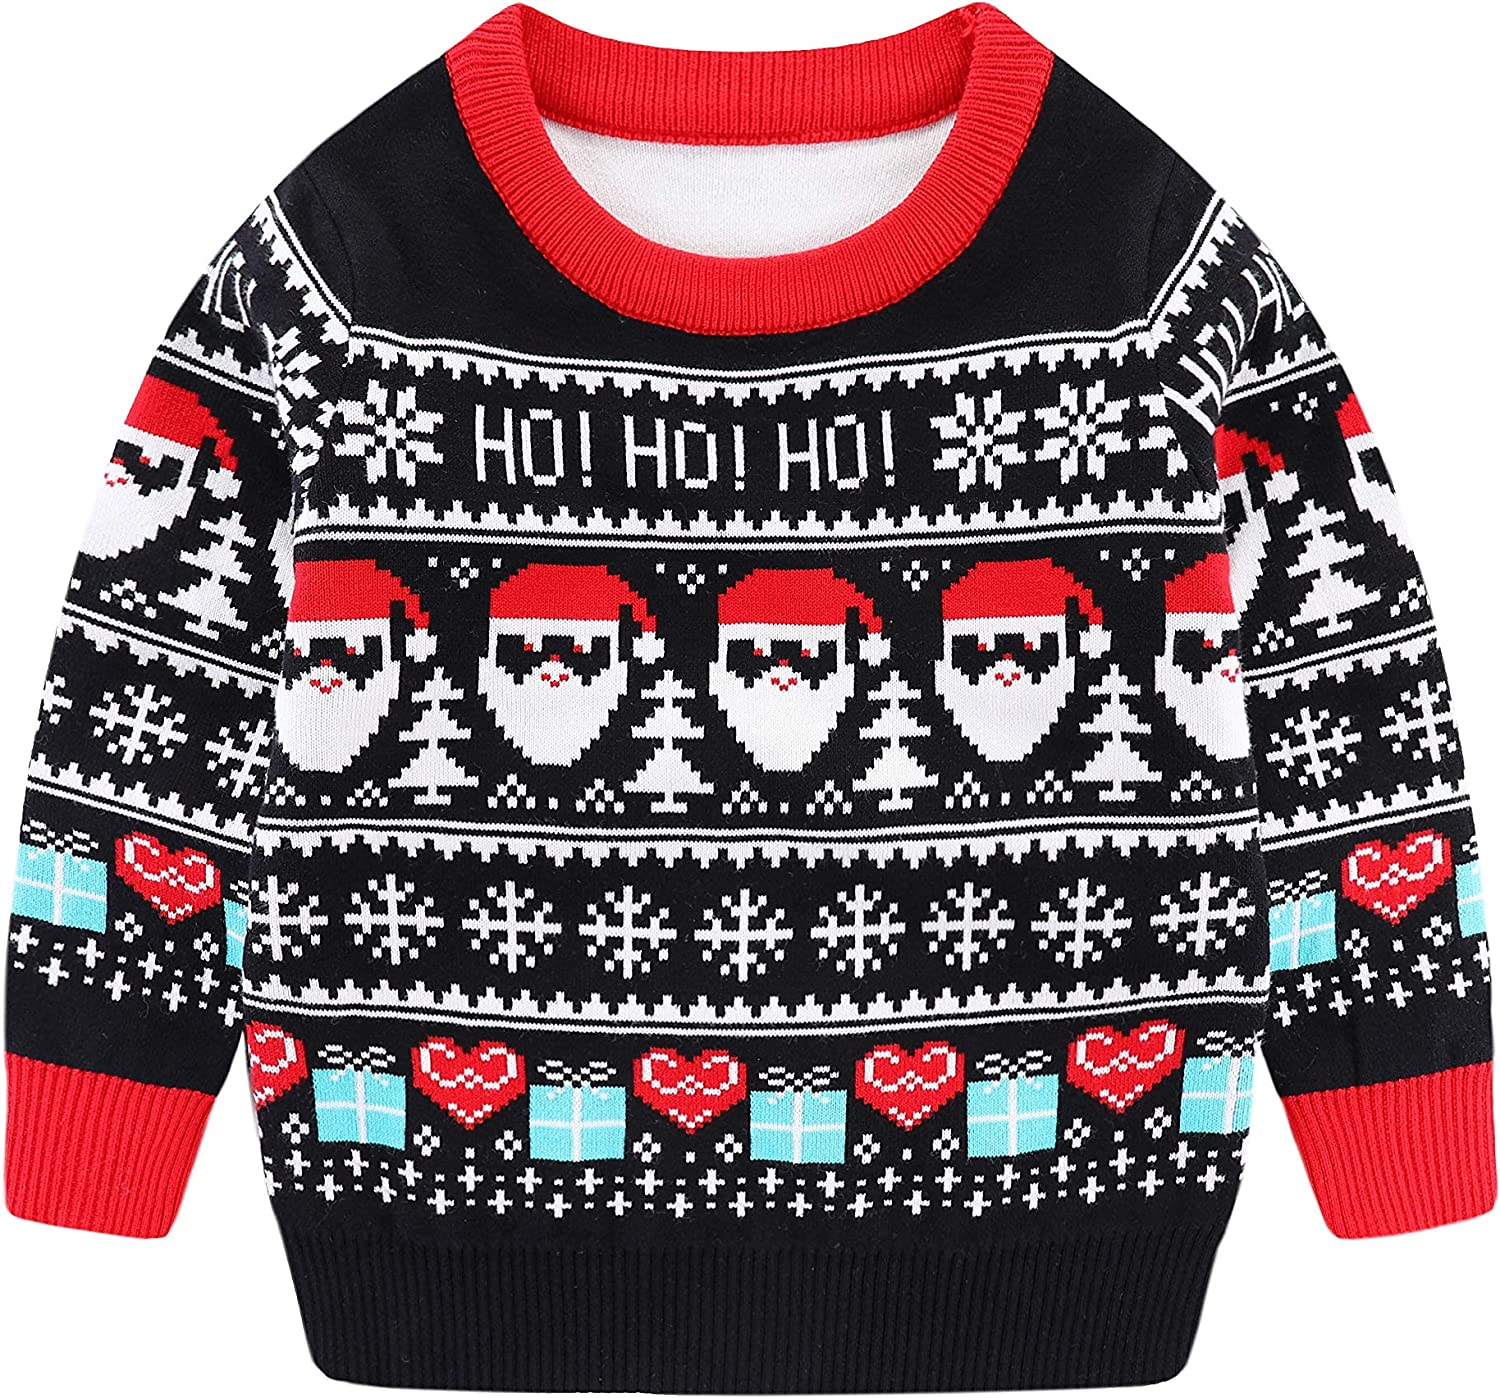 Boys Girls Ugly Christmas Sweater Knit Pullover Santa Snowflake Jumper Toddler Kids Fall Winter Warm Outfit Xmas Gift